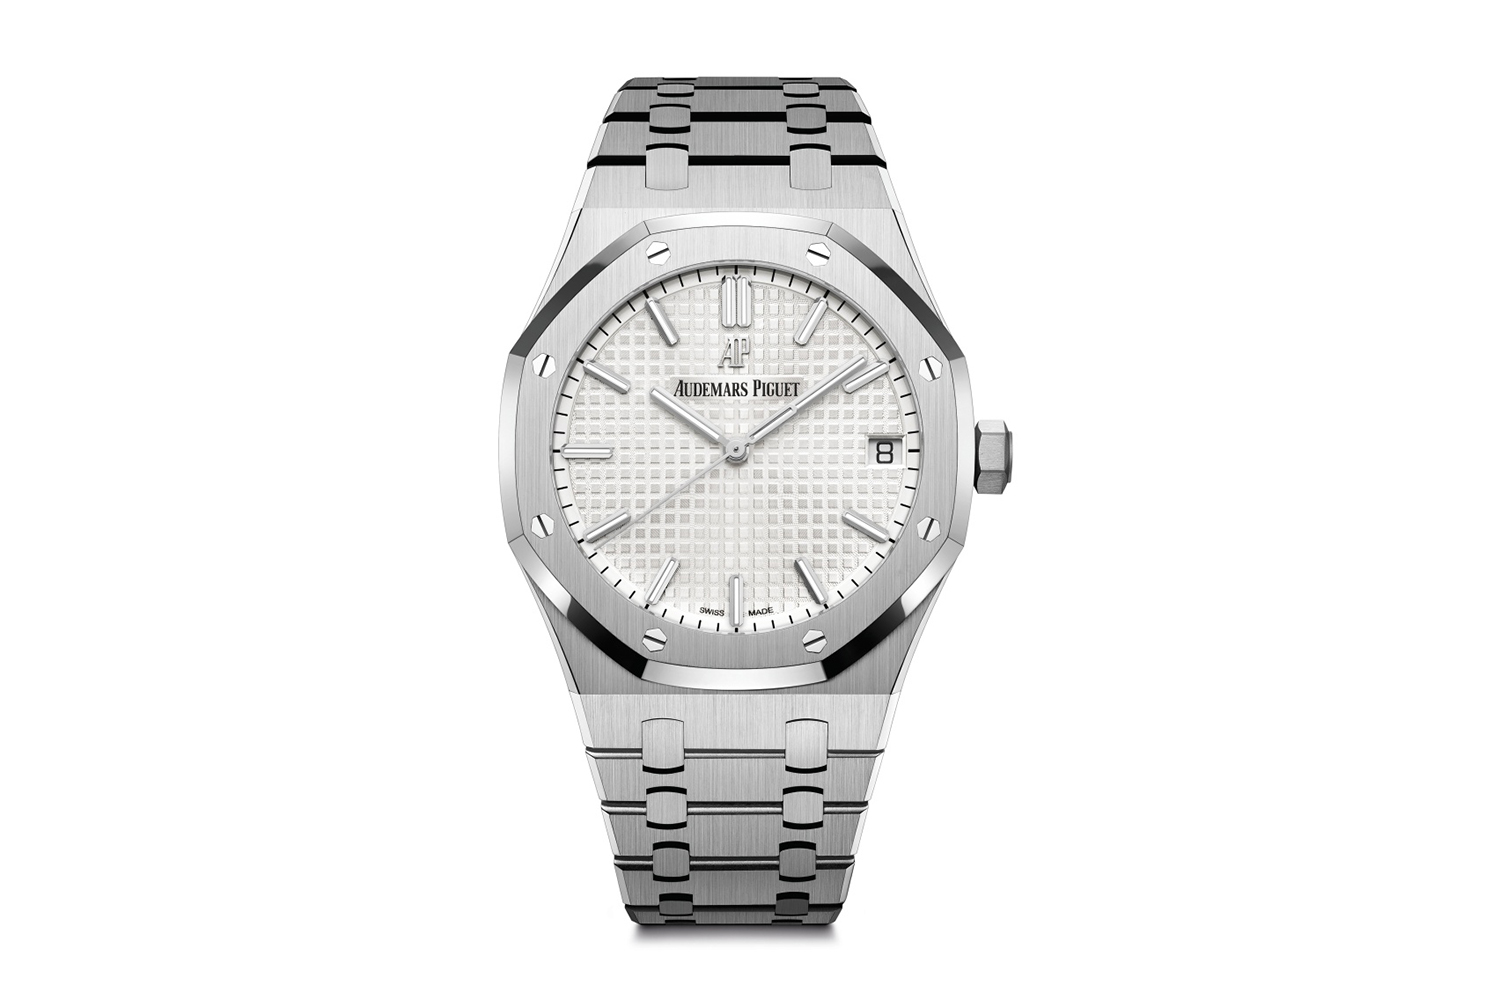 Audemars Piguet Royal Oak 15500ST.OO.1220ST.04